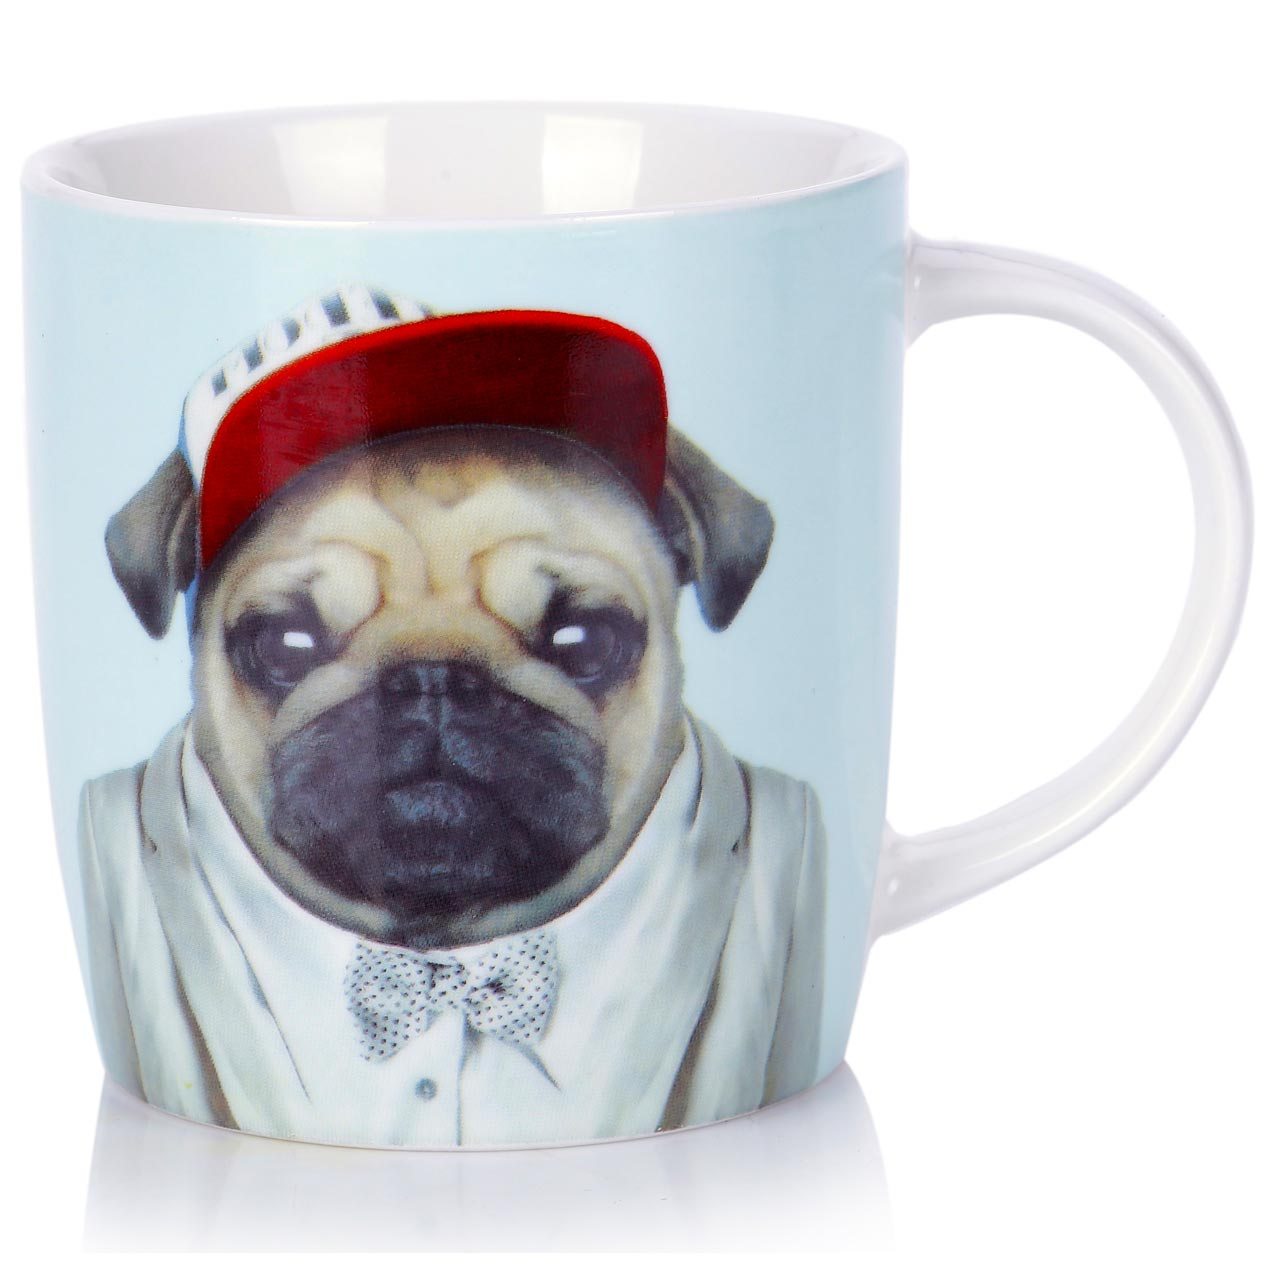 Porcelain Mug Pug | The Design Gift Shop